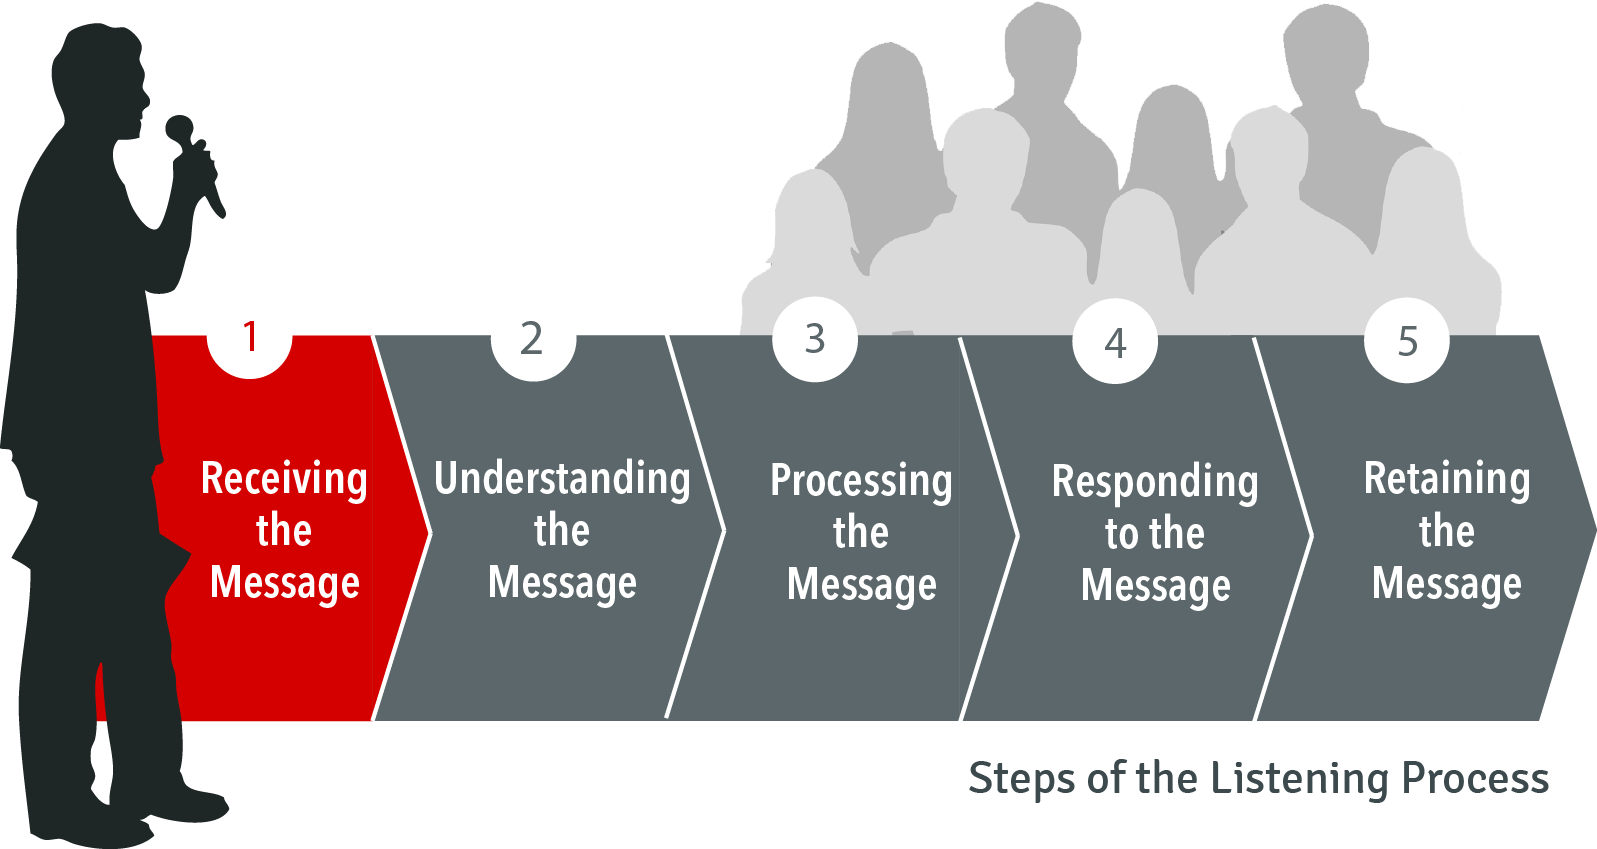 Steps of the listening process: 1. Receiving the message.